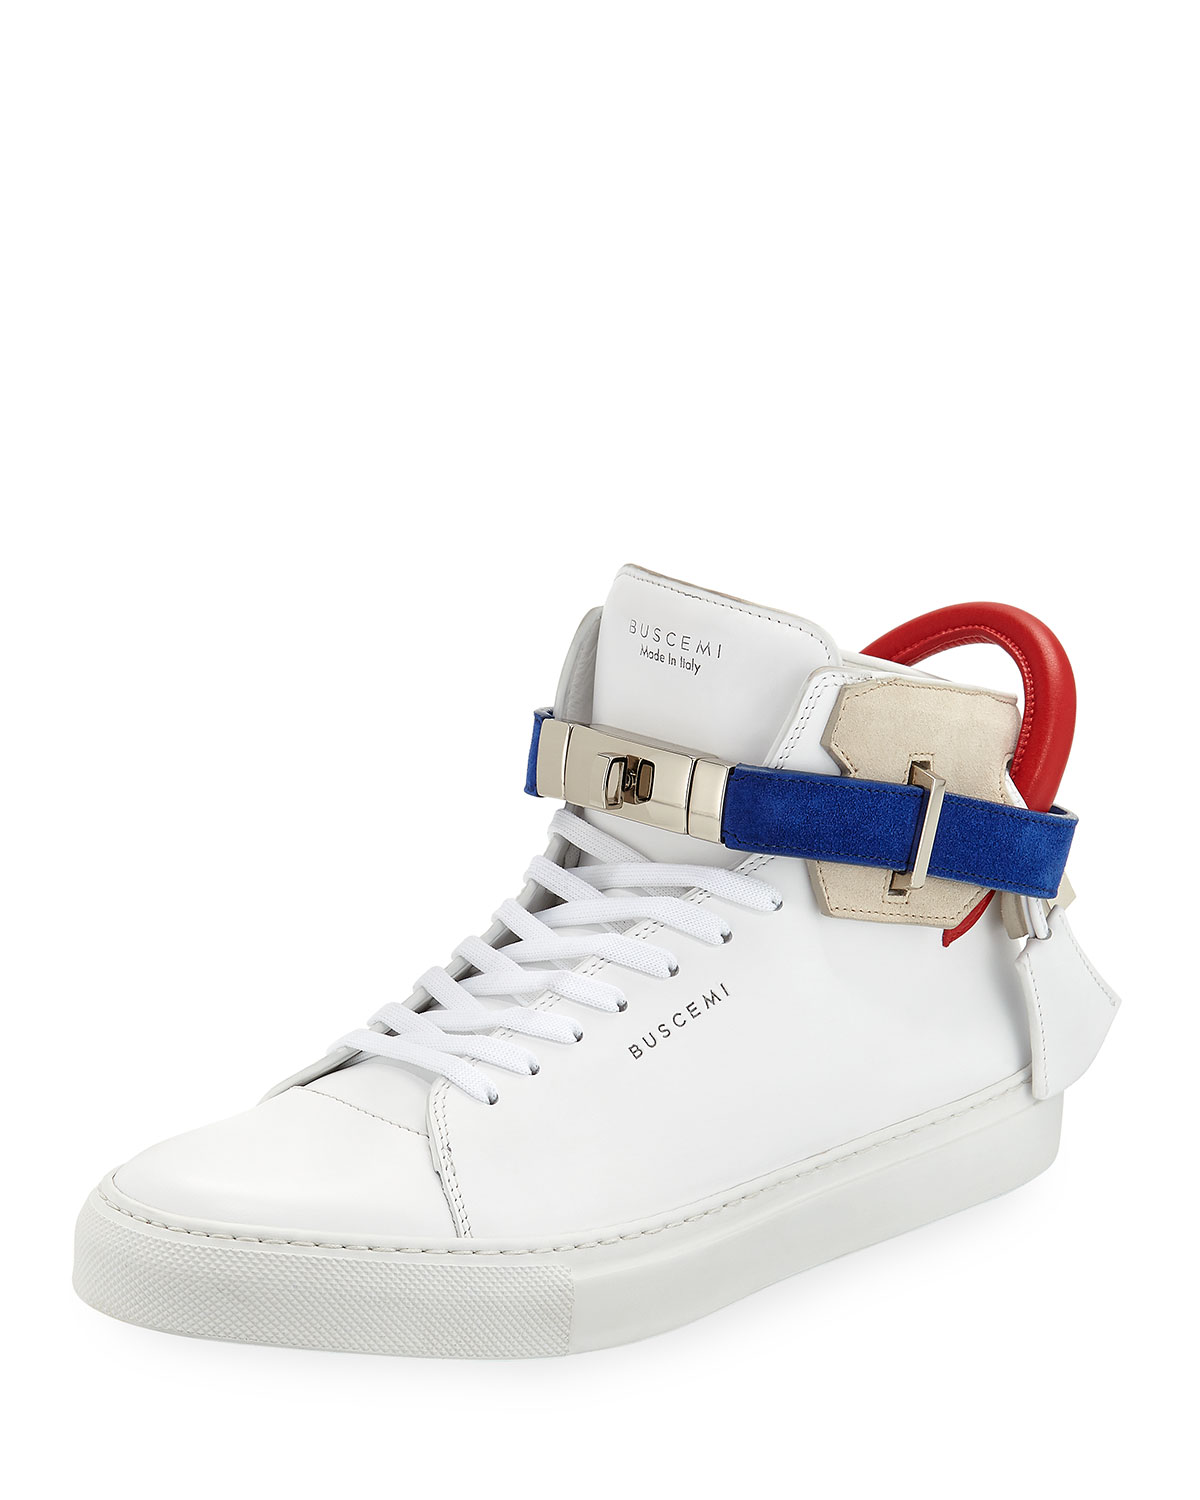 Men's 100mm Leather Mid-Top Sneakers